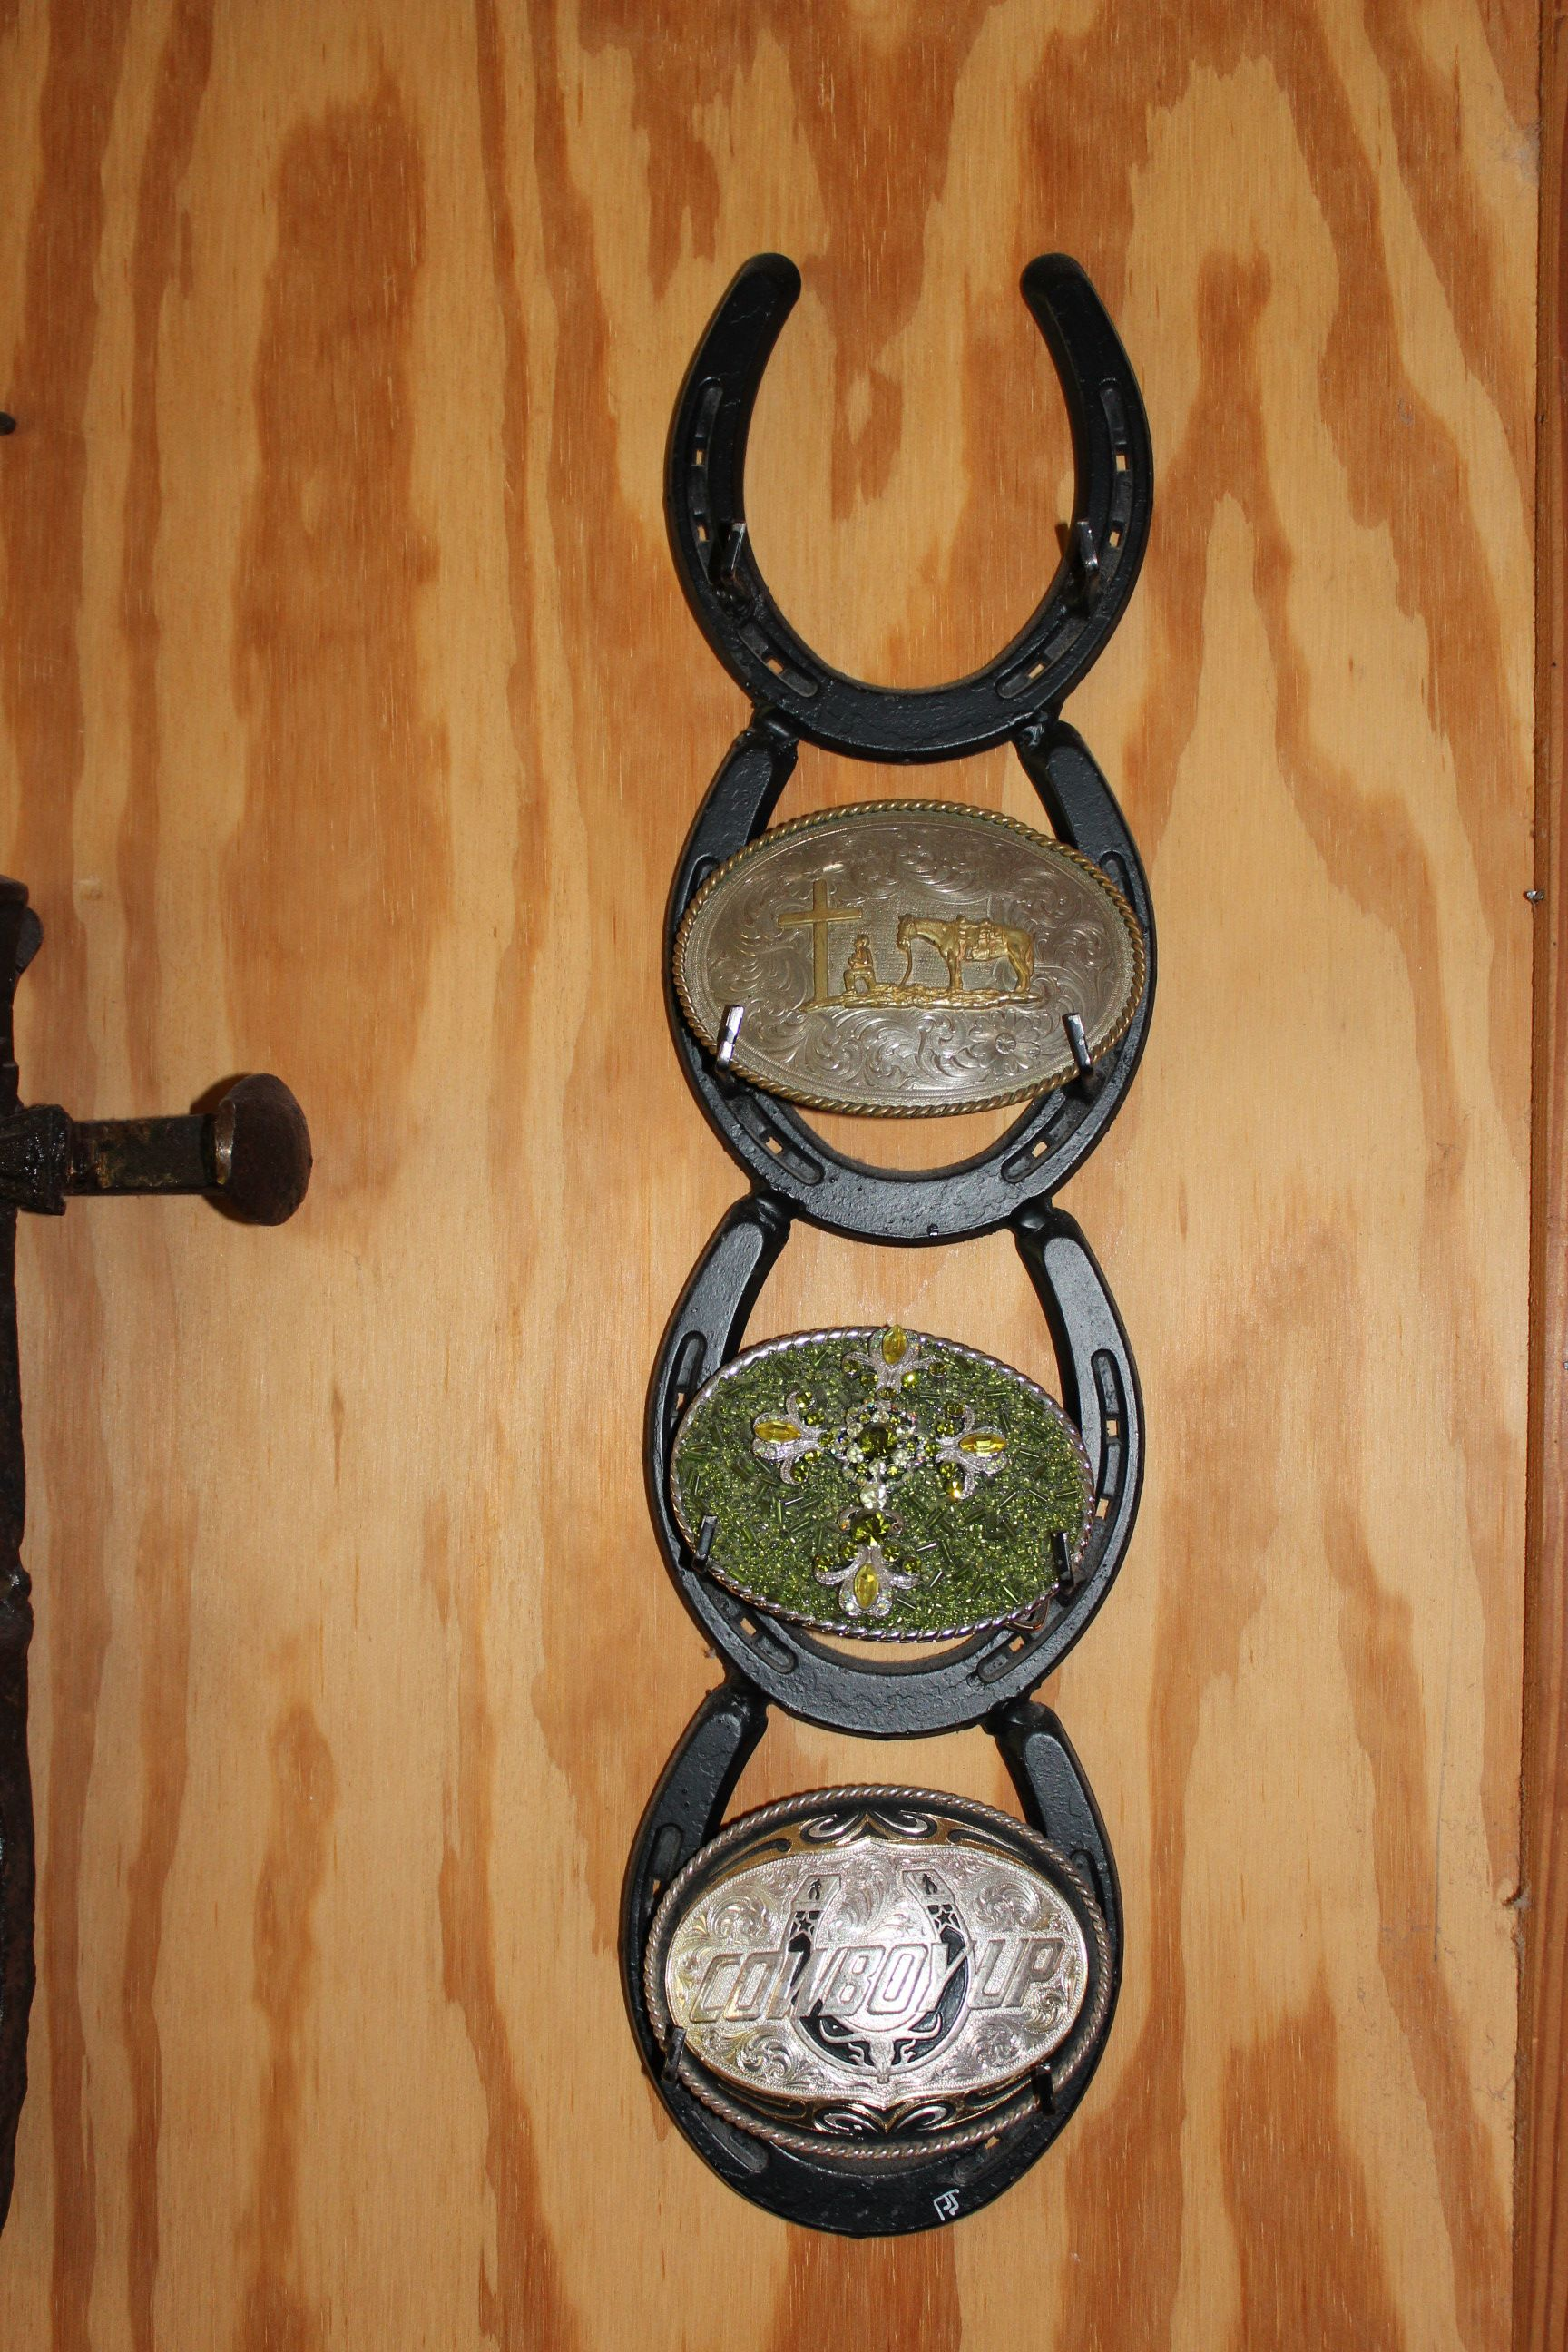 Cool Buckle Display Idea Horseshoe Decor